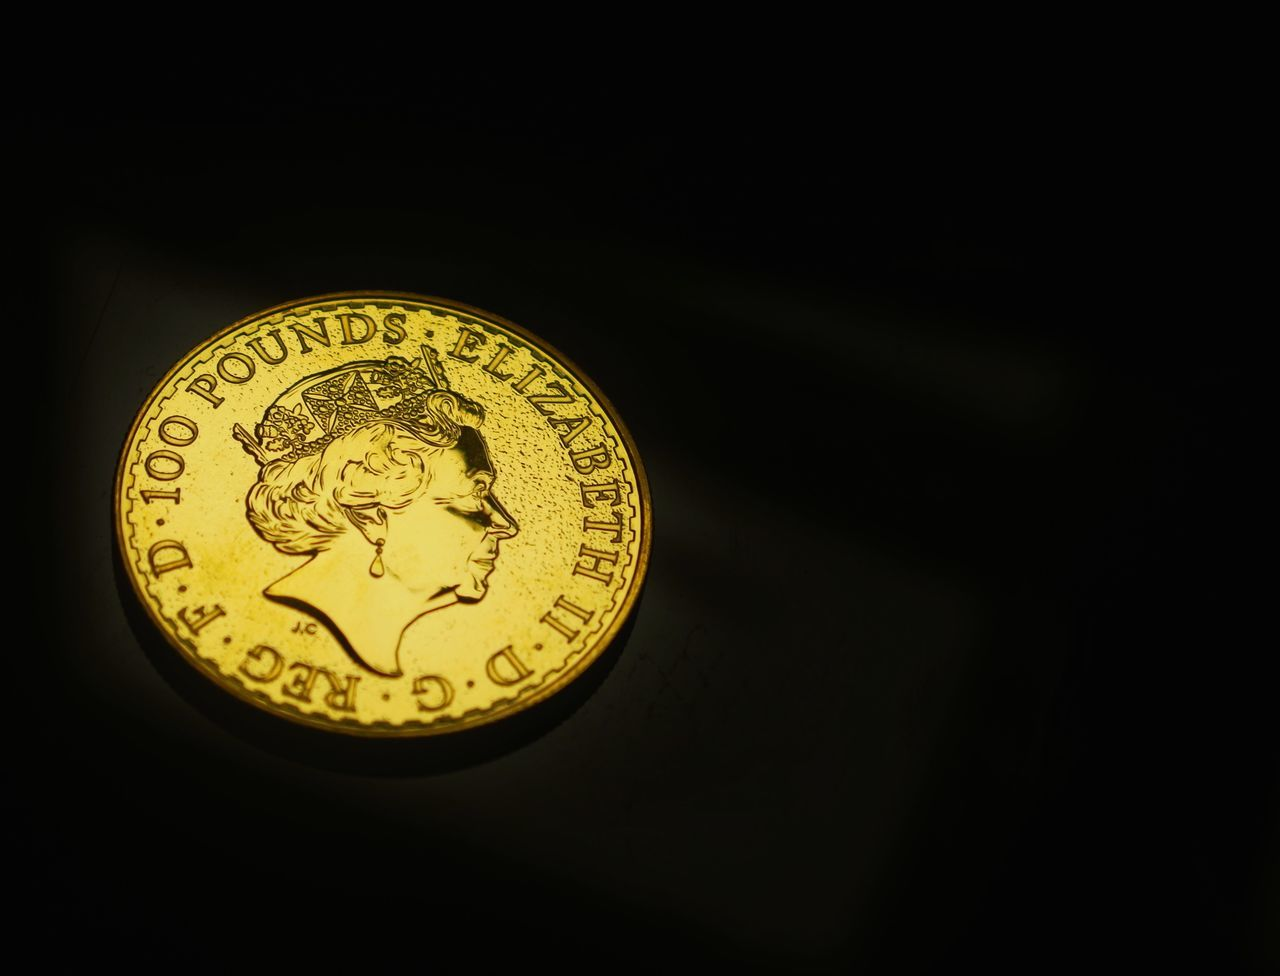 £100 Close-up Gold Colored Gold Black Background Money Macro Photography Pound Sterling Pounds Pound Coins Cashmoney